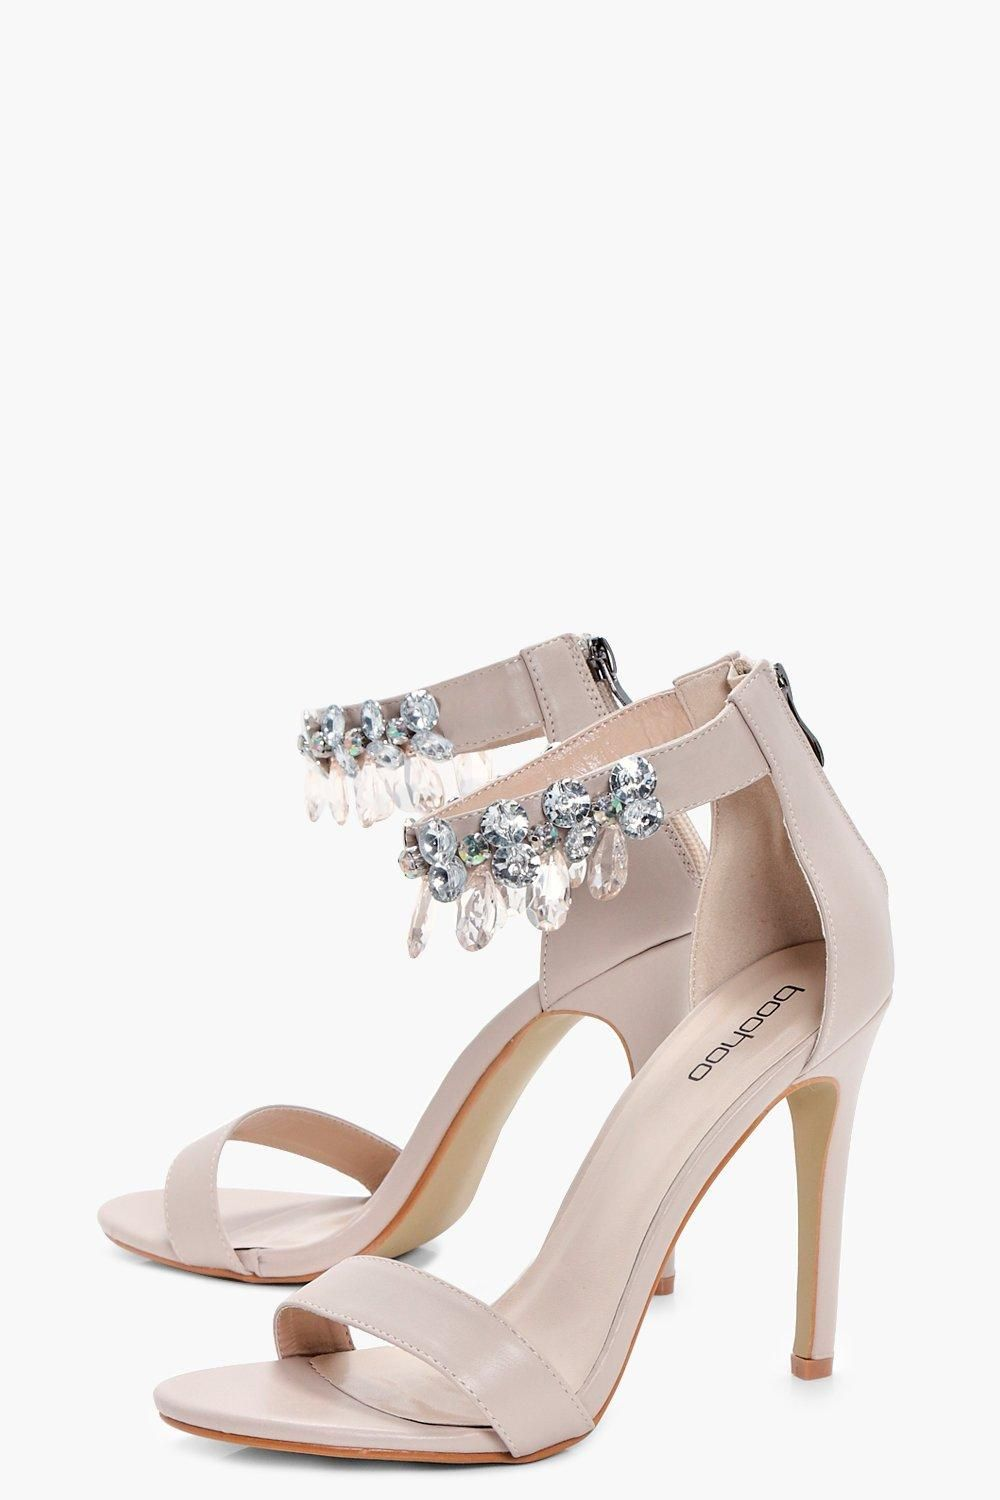 25972662fdd These heels are to die for!